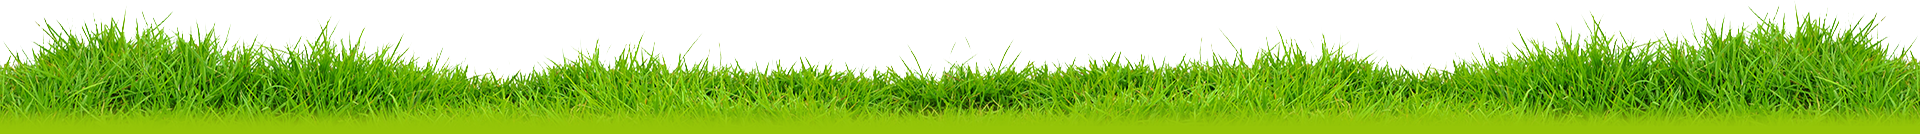 grass-png-image-pictures-images-grass-png-image-13.png